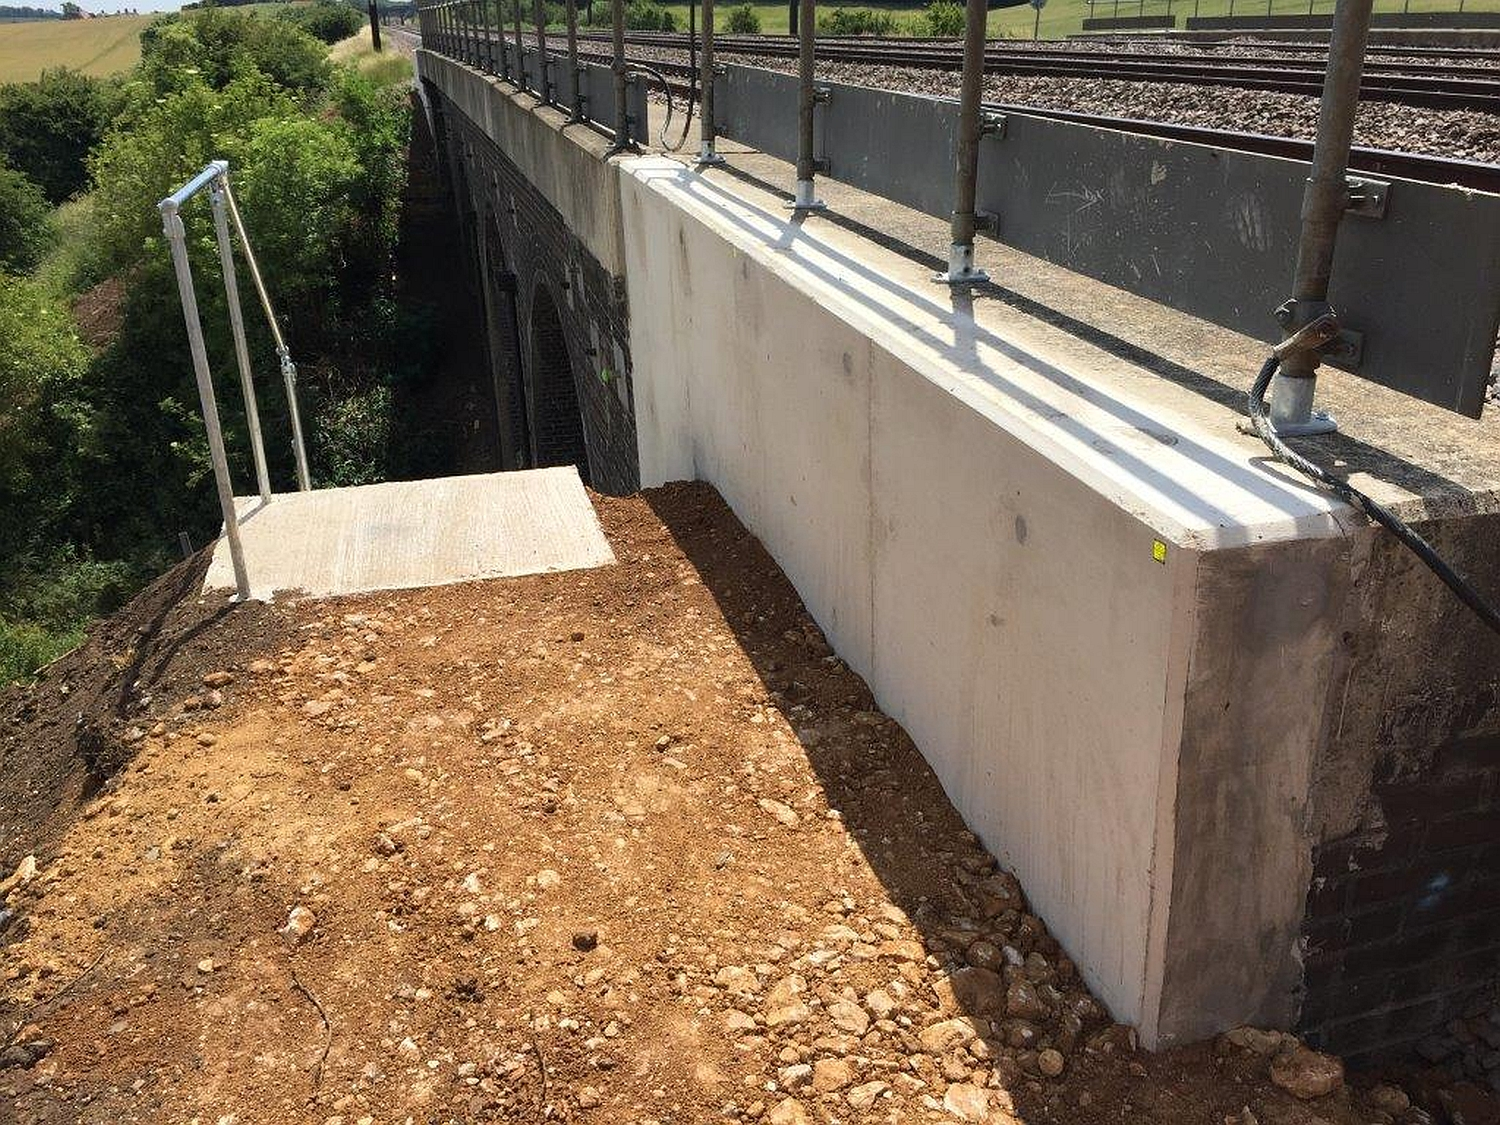 veda_associates_lawn_road_img_revetment_wall2_complete.jpg